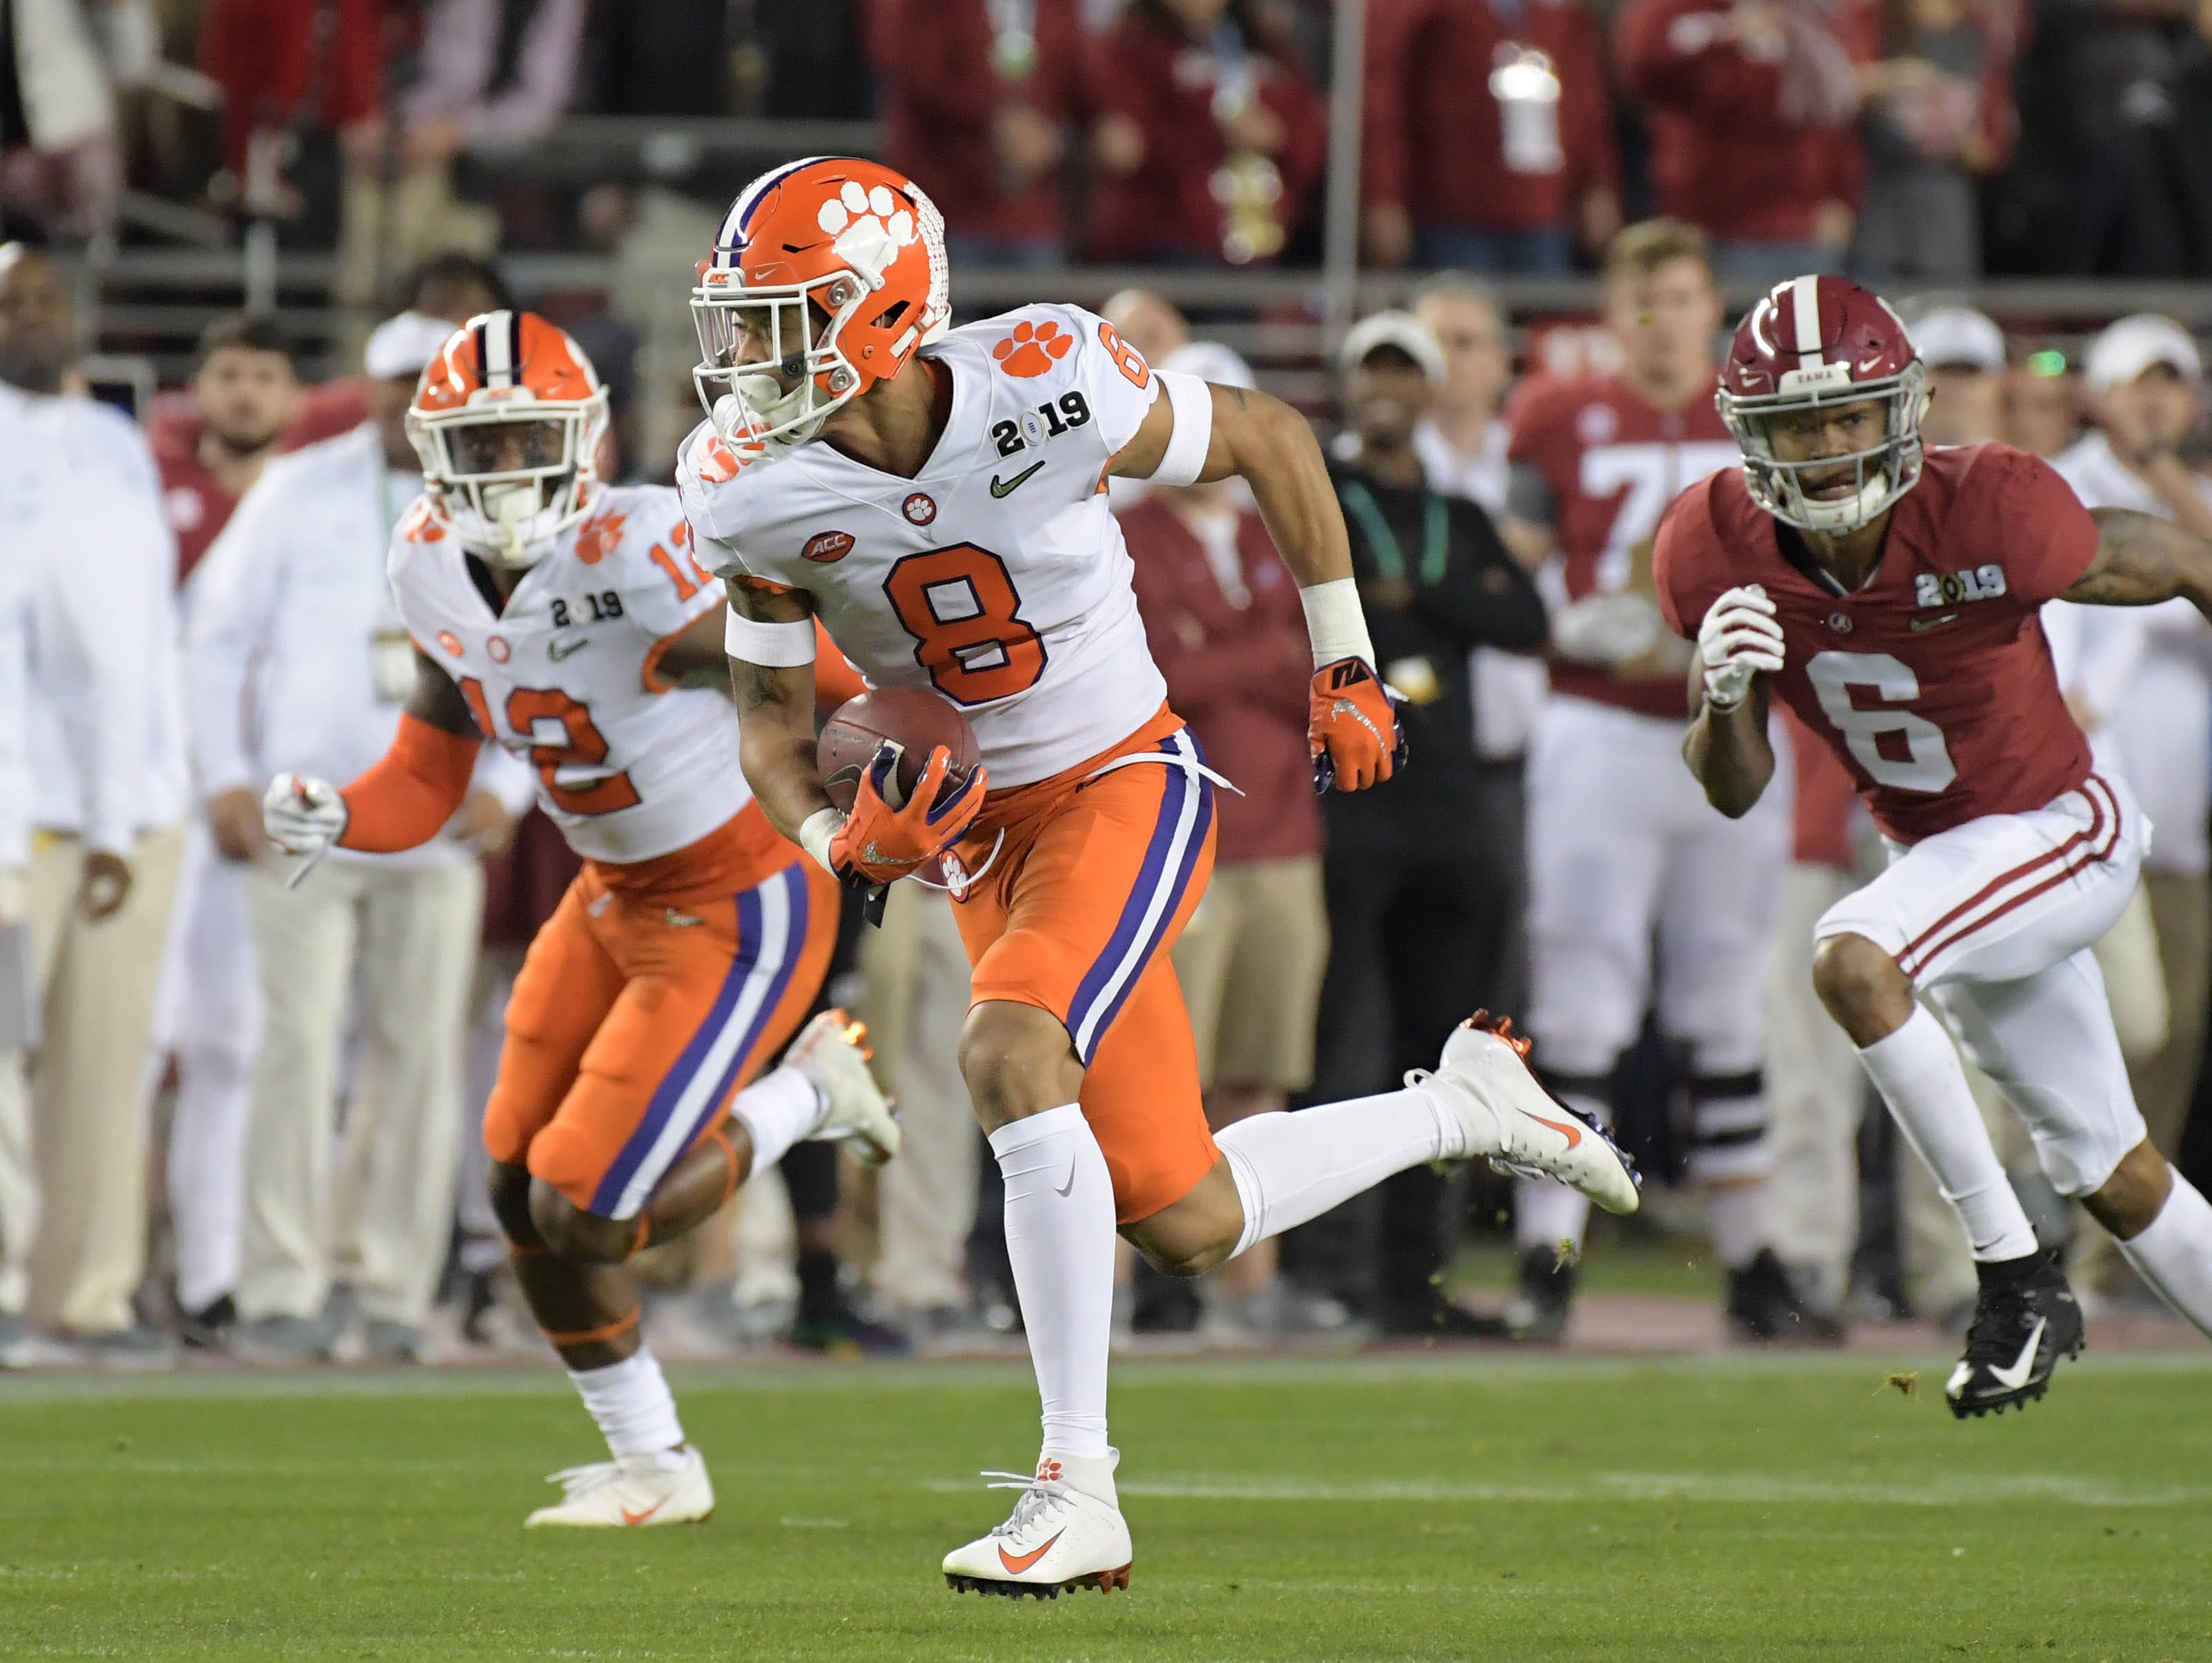 Jan 7, 2019; Santa Clara, CA, USA; Clemson Tigers cornerback A.J. Terrell (8) runs to score on an interception return against the Alabama Crimson Tide during the 2019 College Football Playoff Championship game at Levi's Stadium. Mandatory Credit: Kirby Lee-USA TODAY Sports